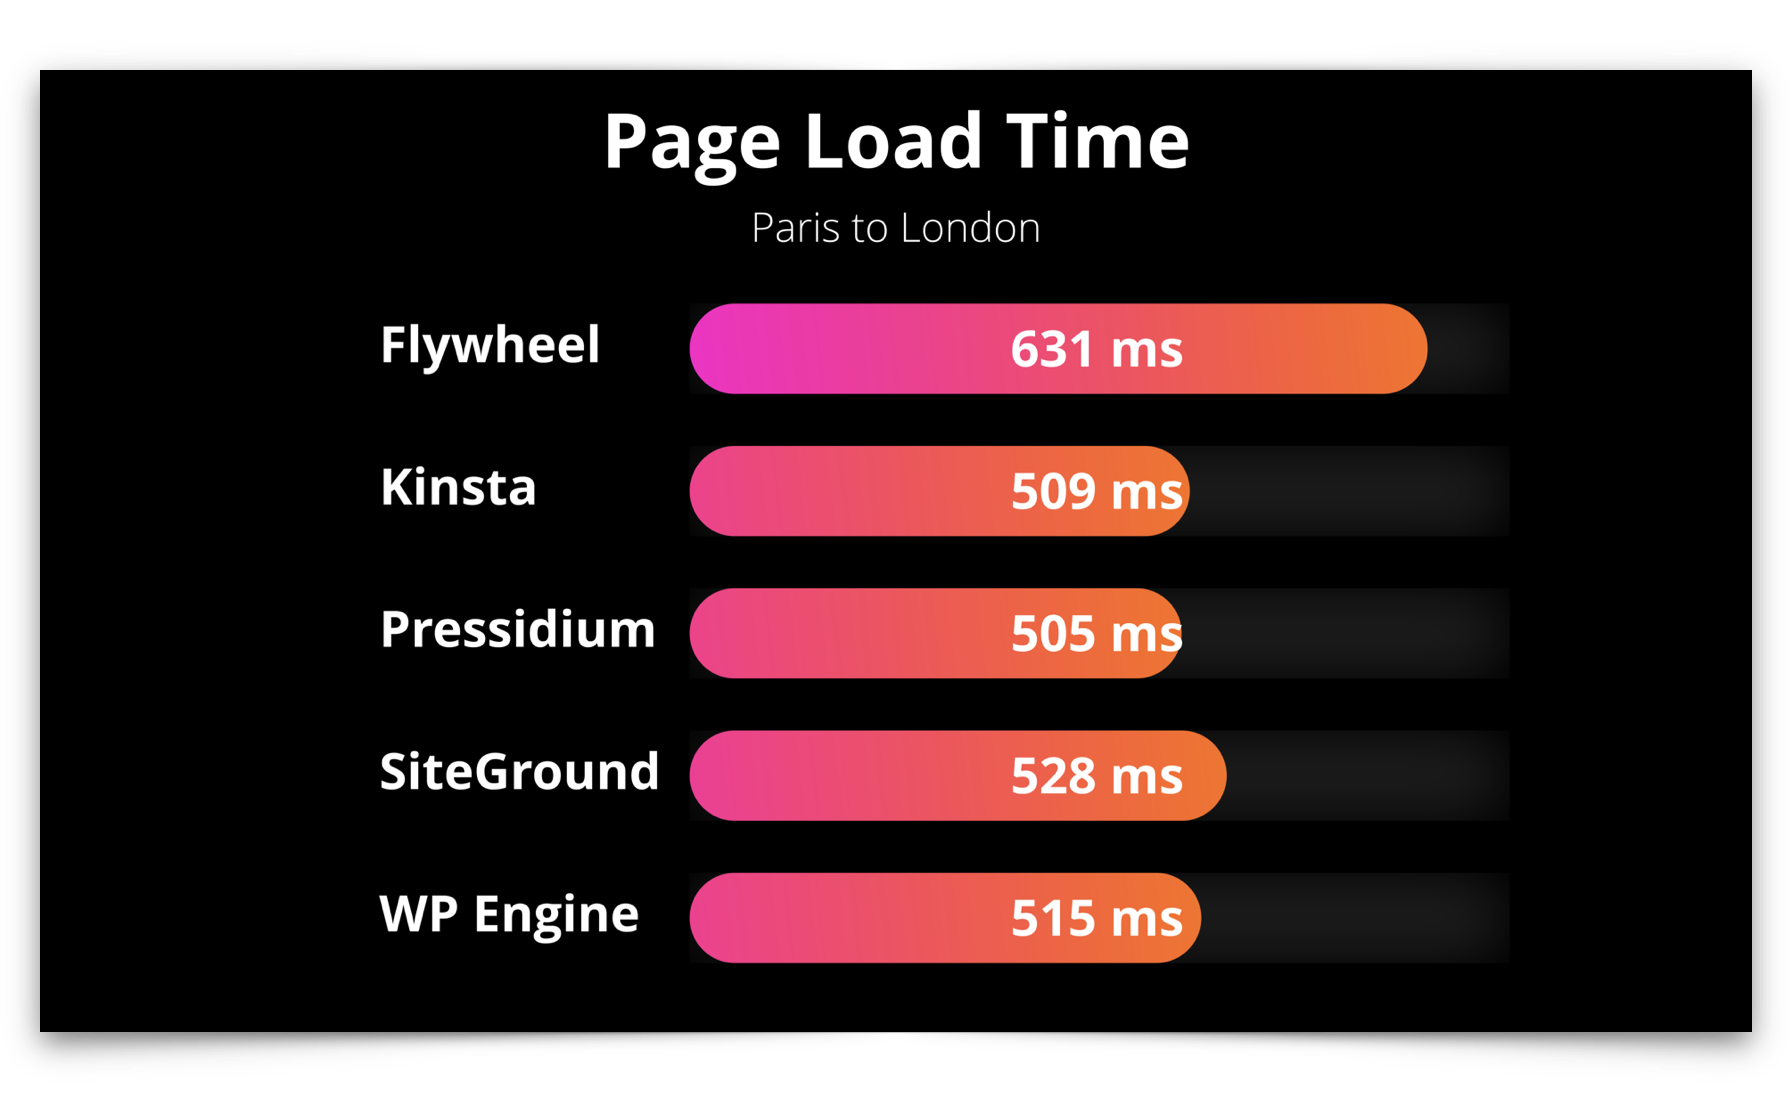 Managed WordPress domestic page load time test results showing Kinsta and Pressidium as the fastest